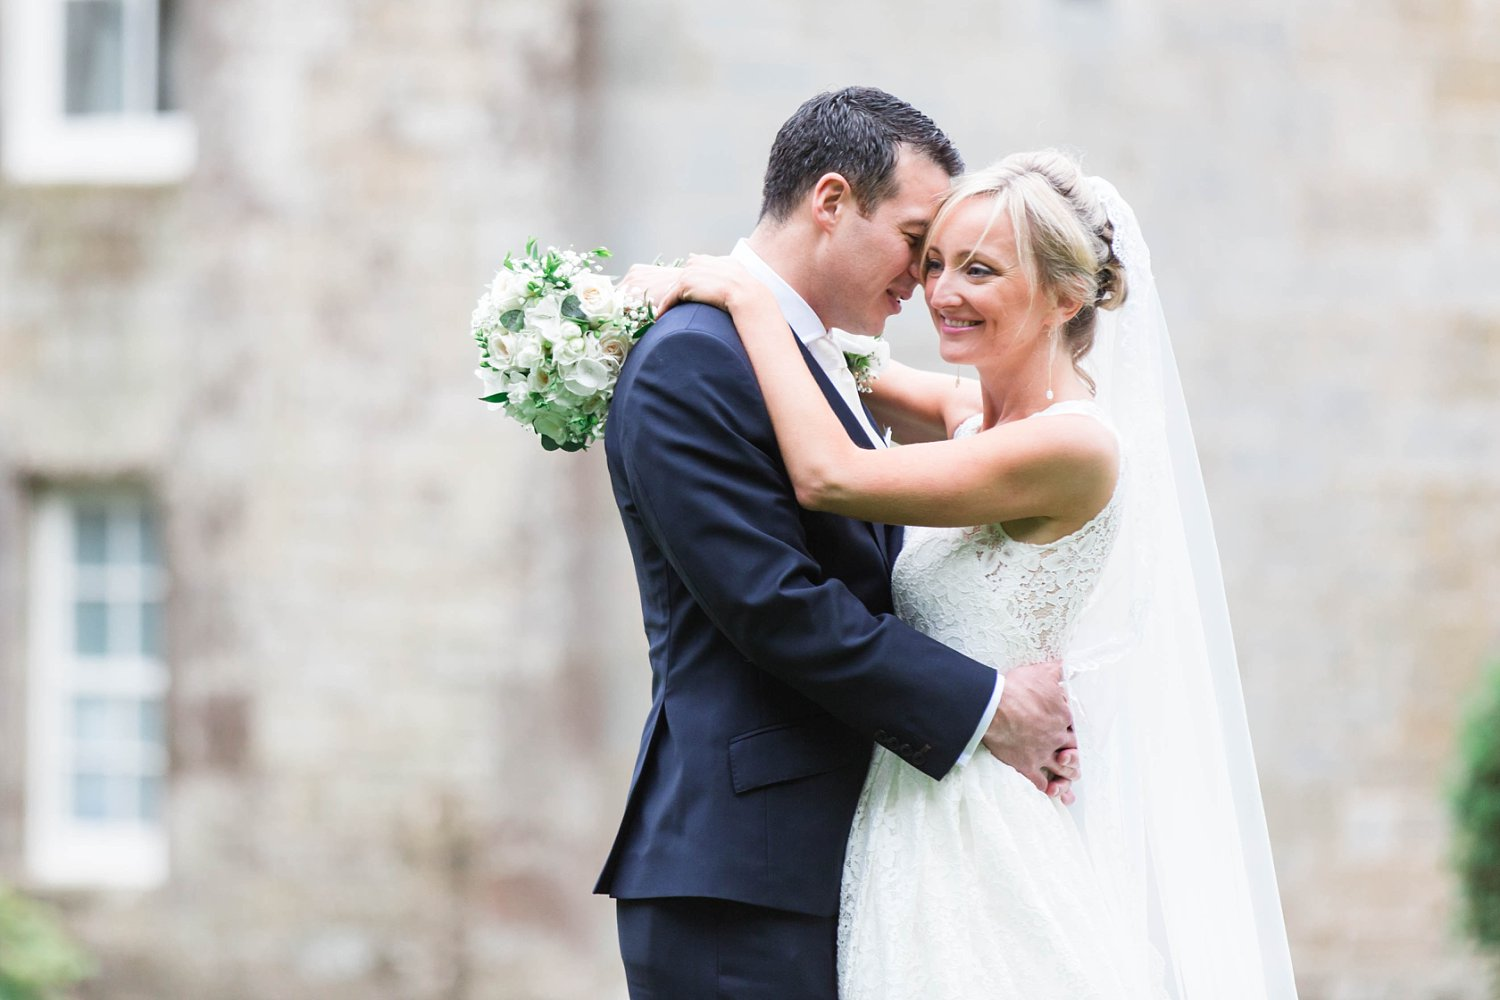 Bride and groom portraits at a luxury castle wedding in Scotland. Fine art wedding photography in the UK.